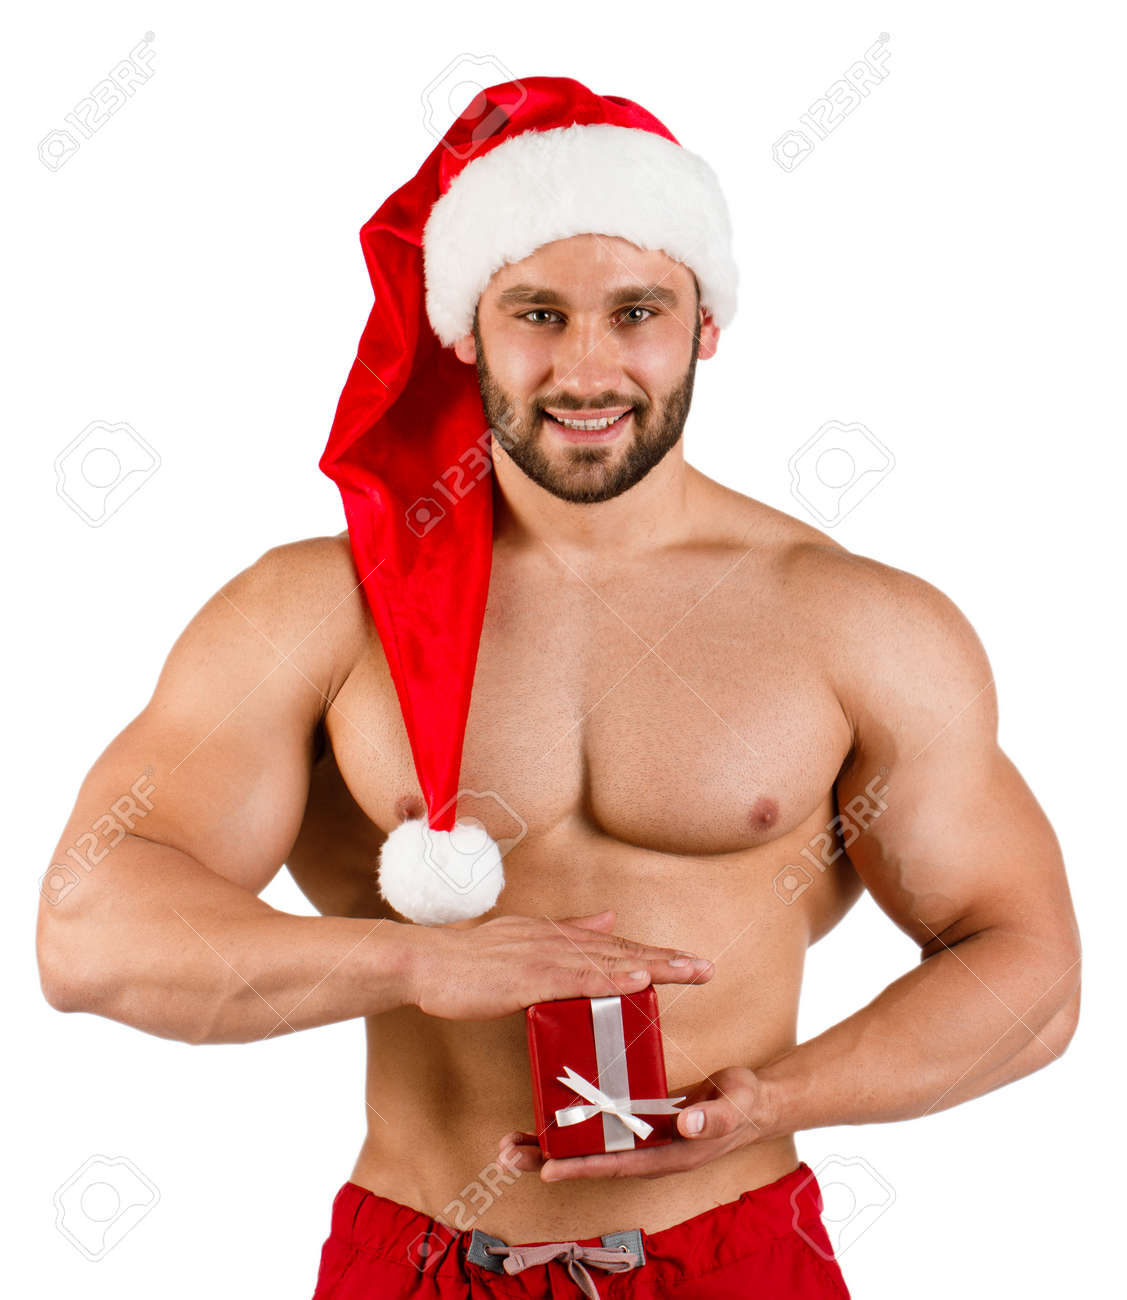 Strong Smiling Man Dressed As Santa Claus With Red Hat And Small